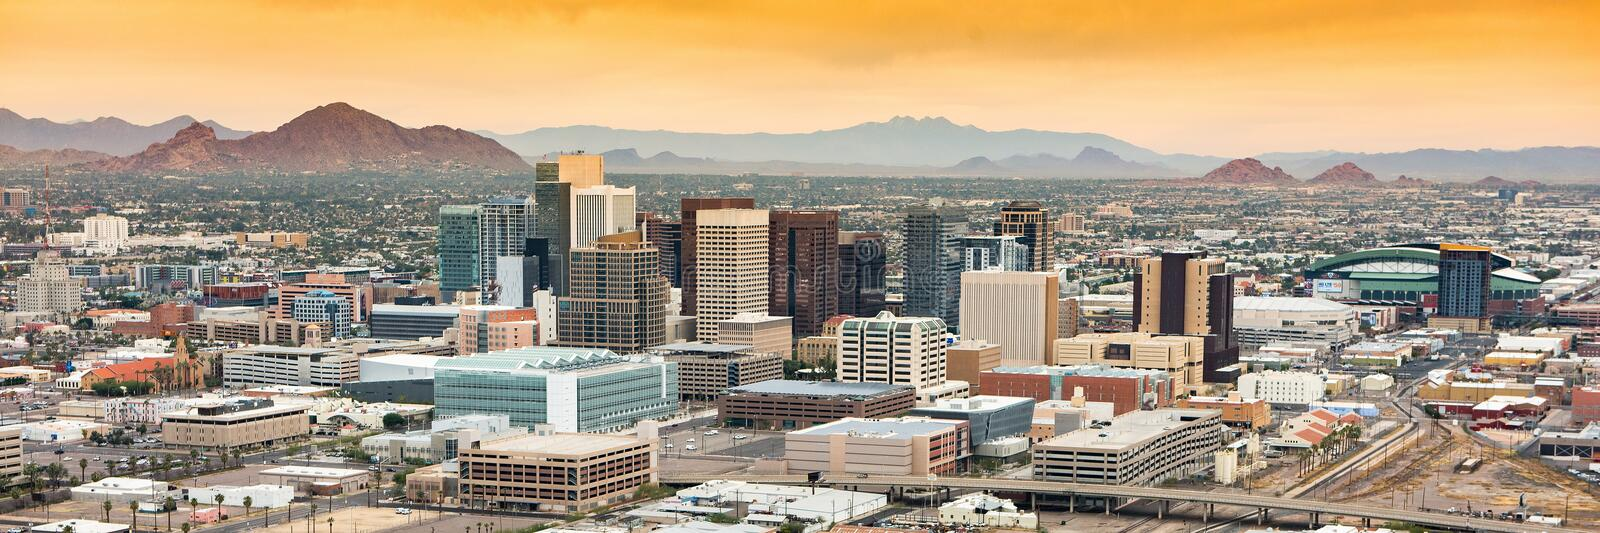 Panoramic aerial view over Downtown Phoenix, Arizona royalty free stock image